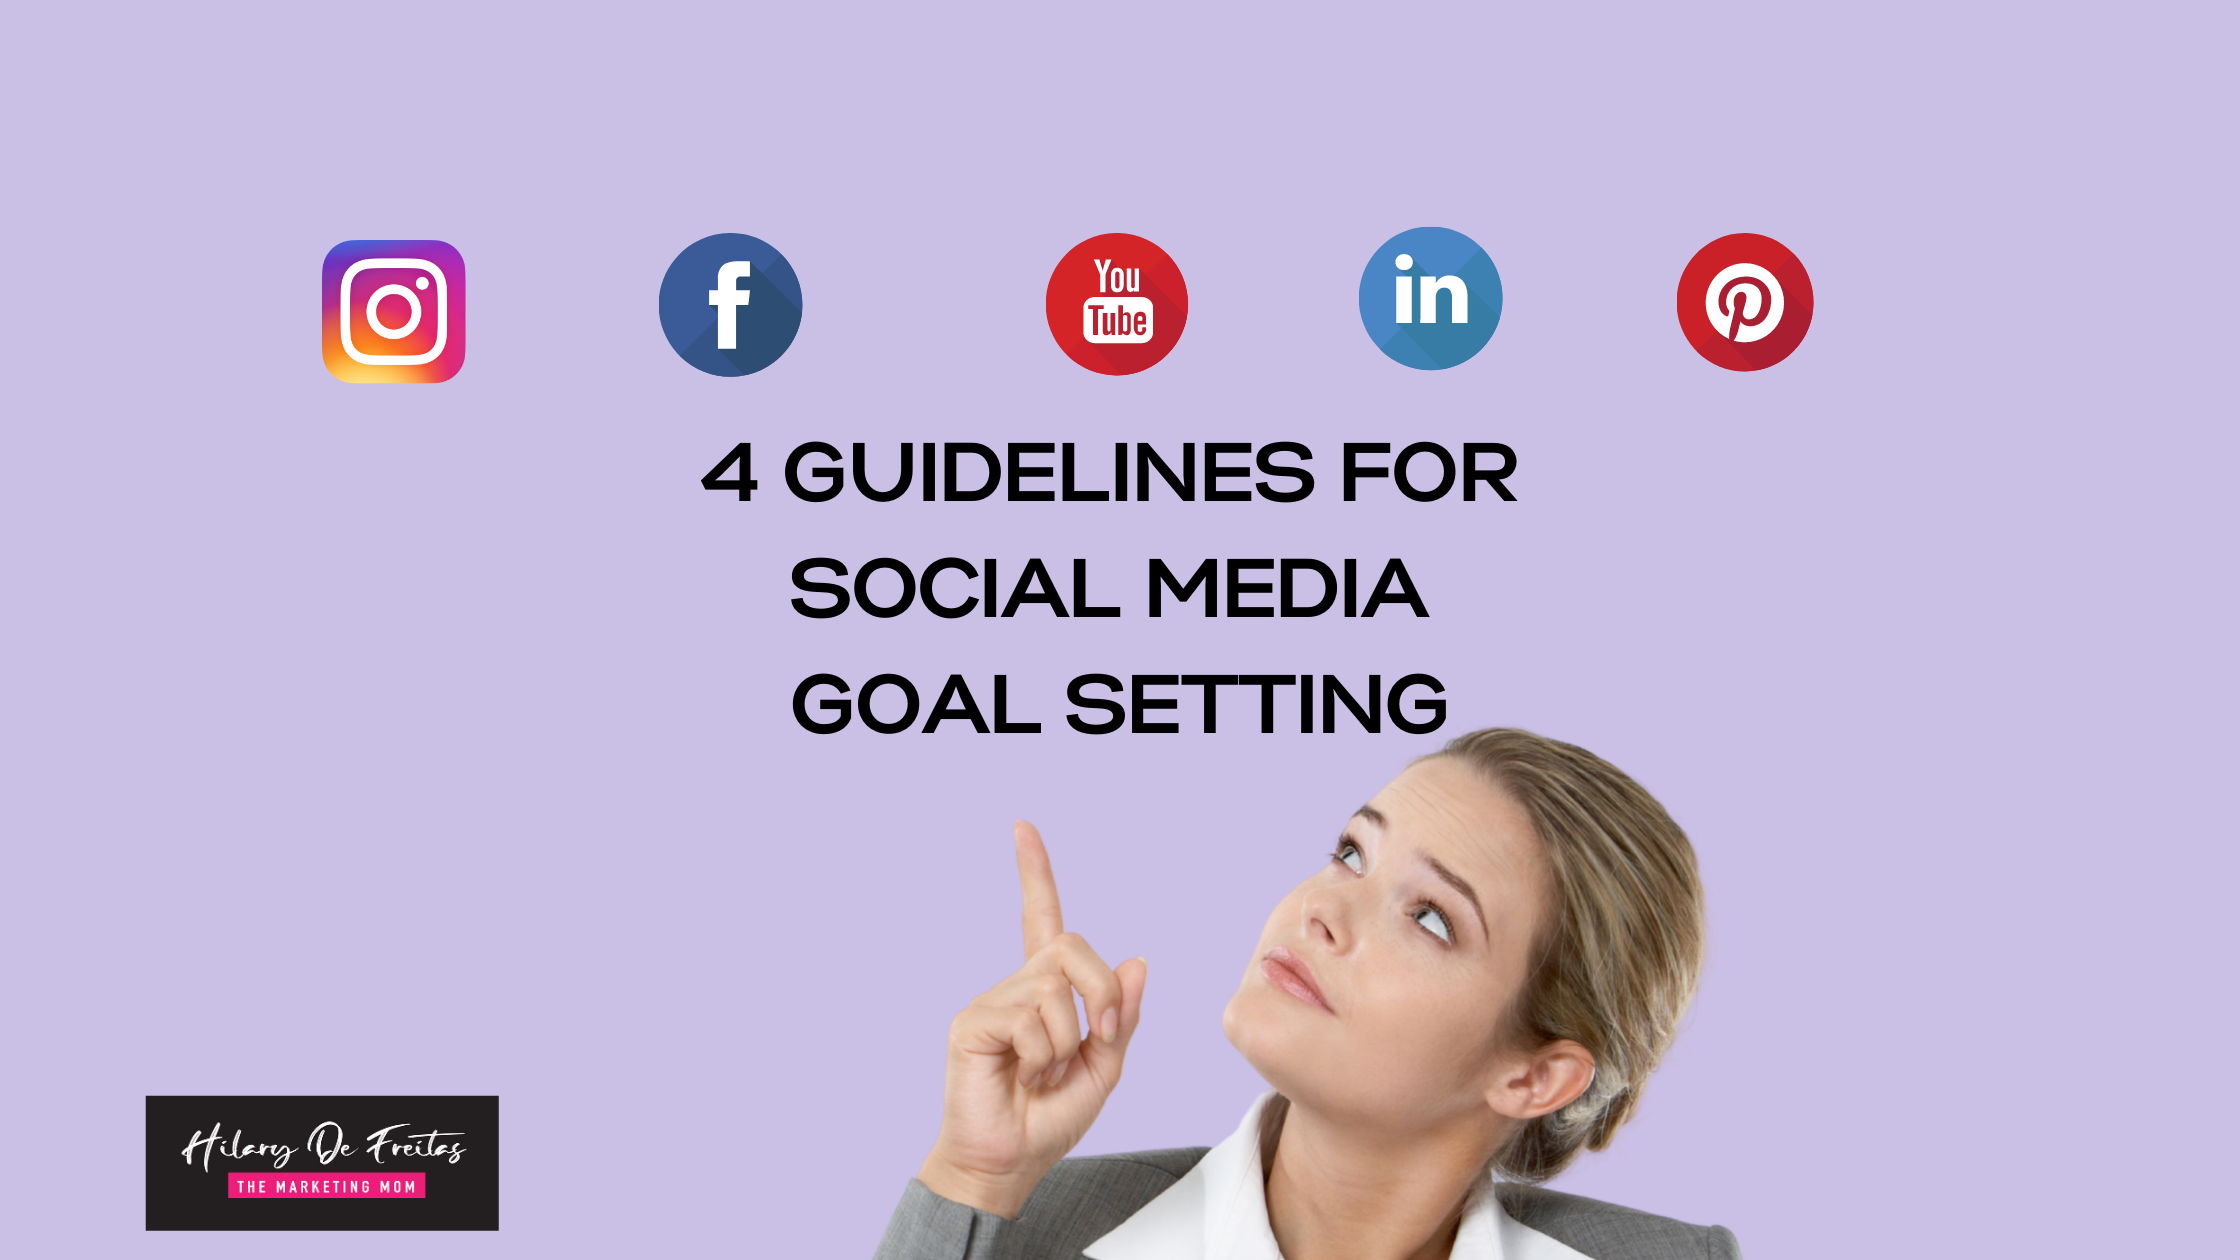 Guidelines for Social Media Goal Setting